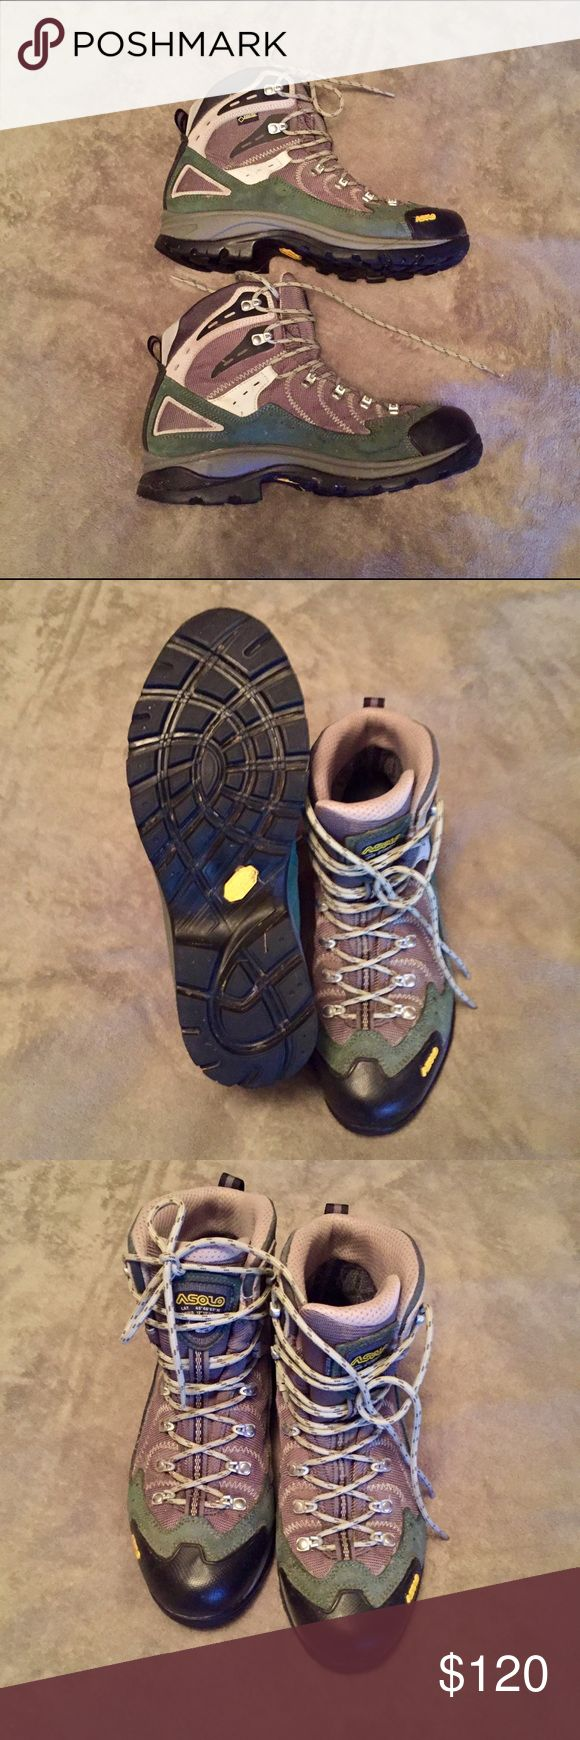 Women's Asolo Hiking Boots Excellent condition! Worn once! Amazing hiking boots with awesome tread to keep your toes & feet safe  These boots can be used for short hikes or backpacking. I truly love these boots but love another pair more so never wear these  Asolo Shoes